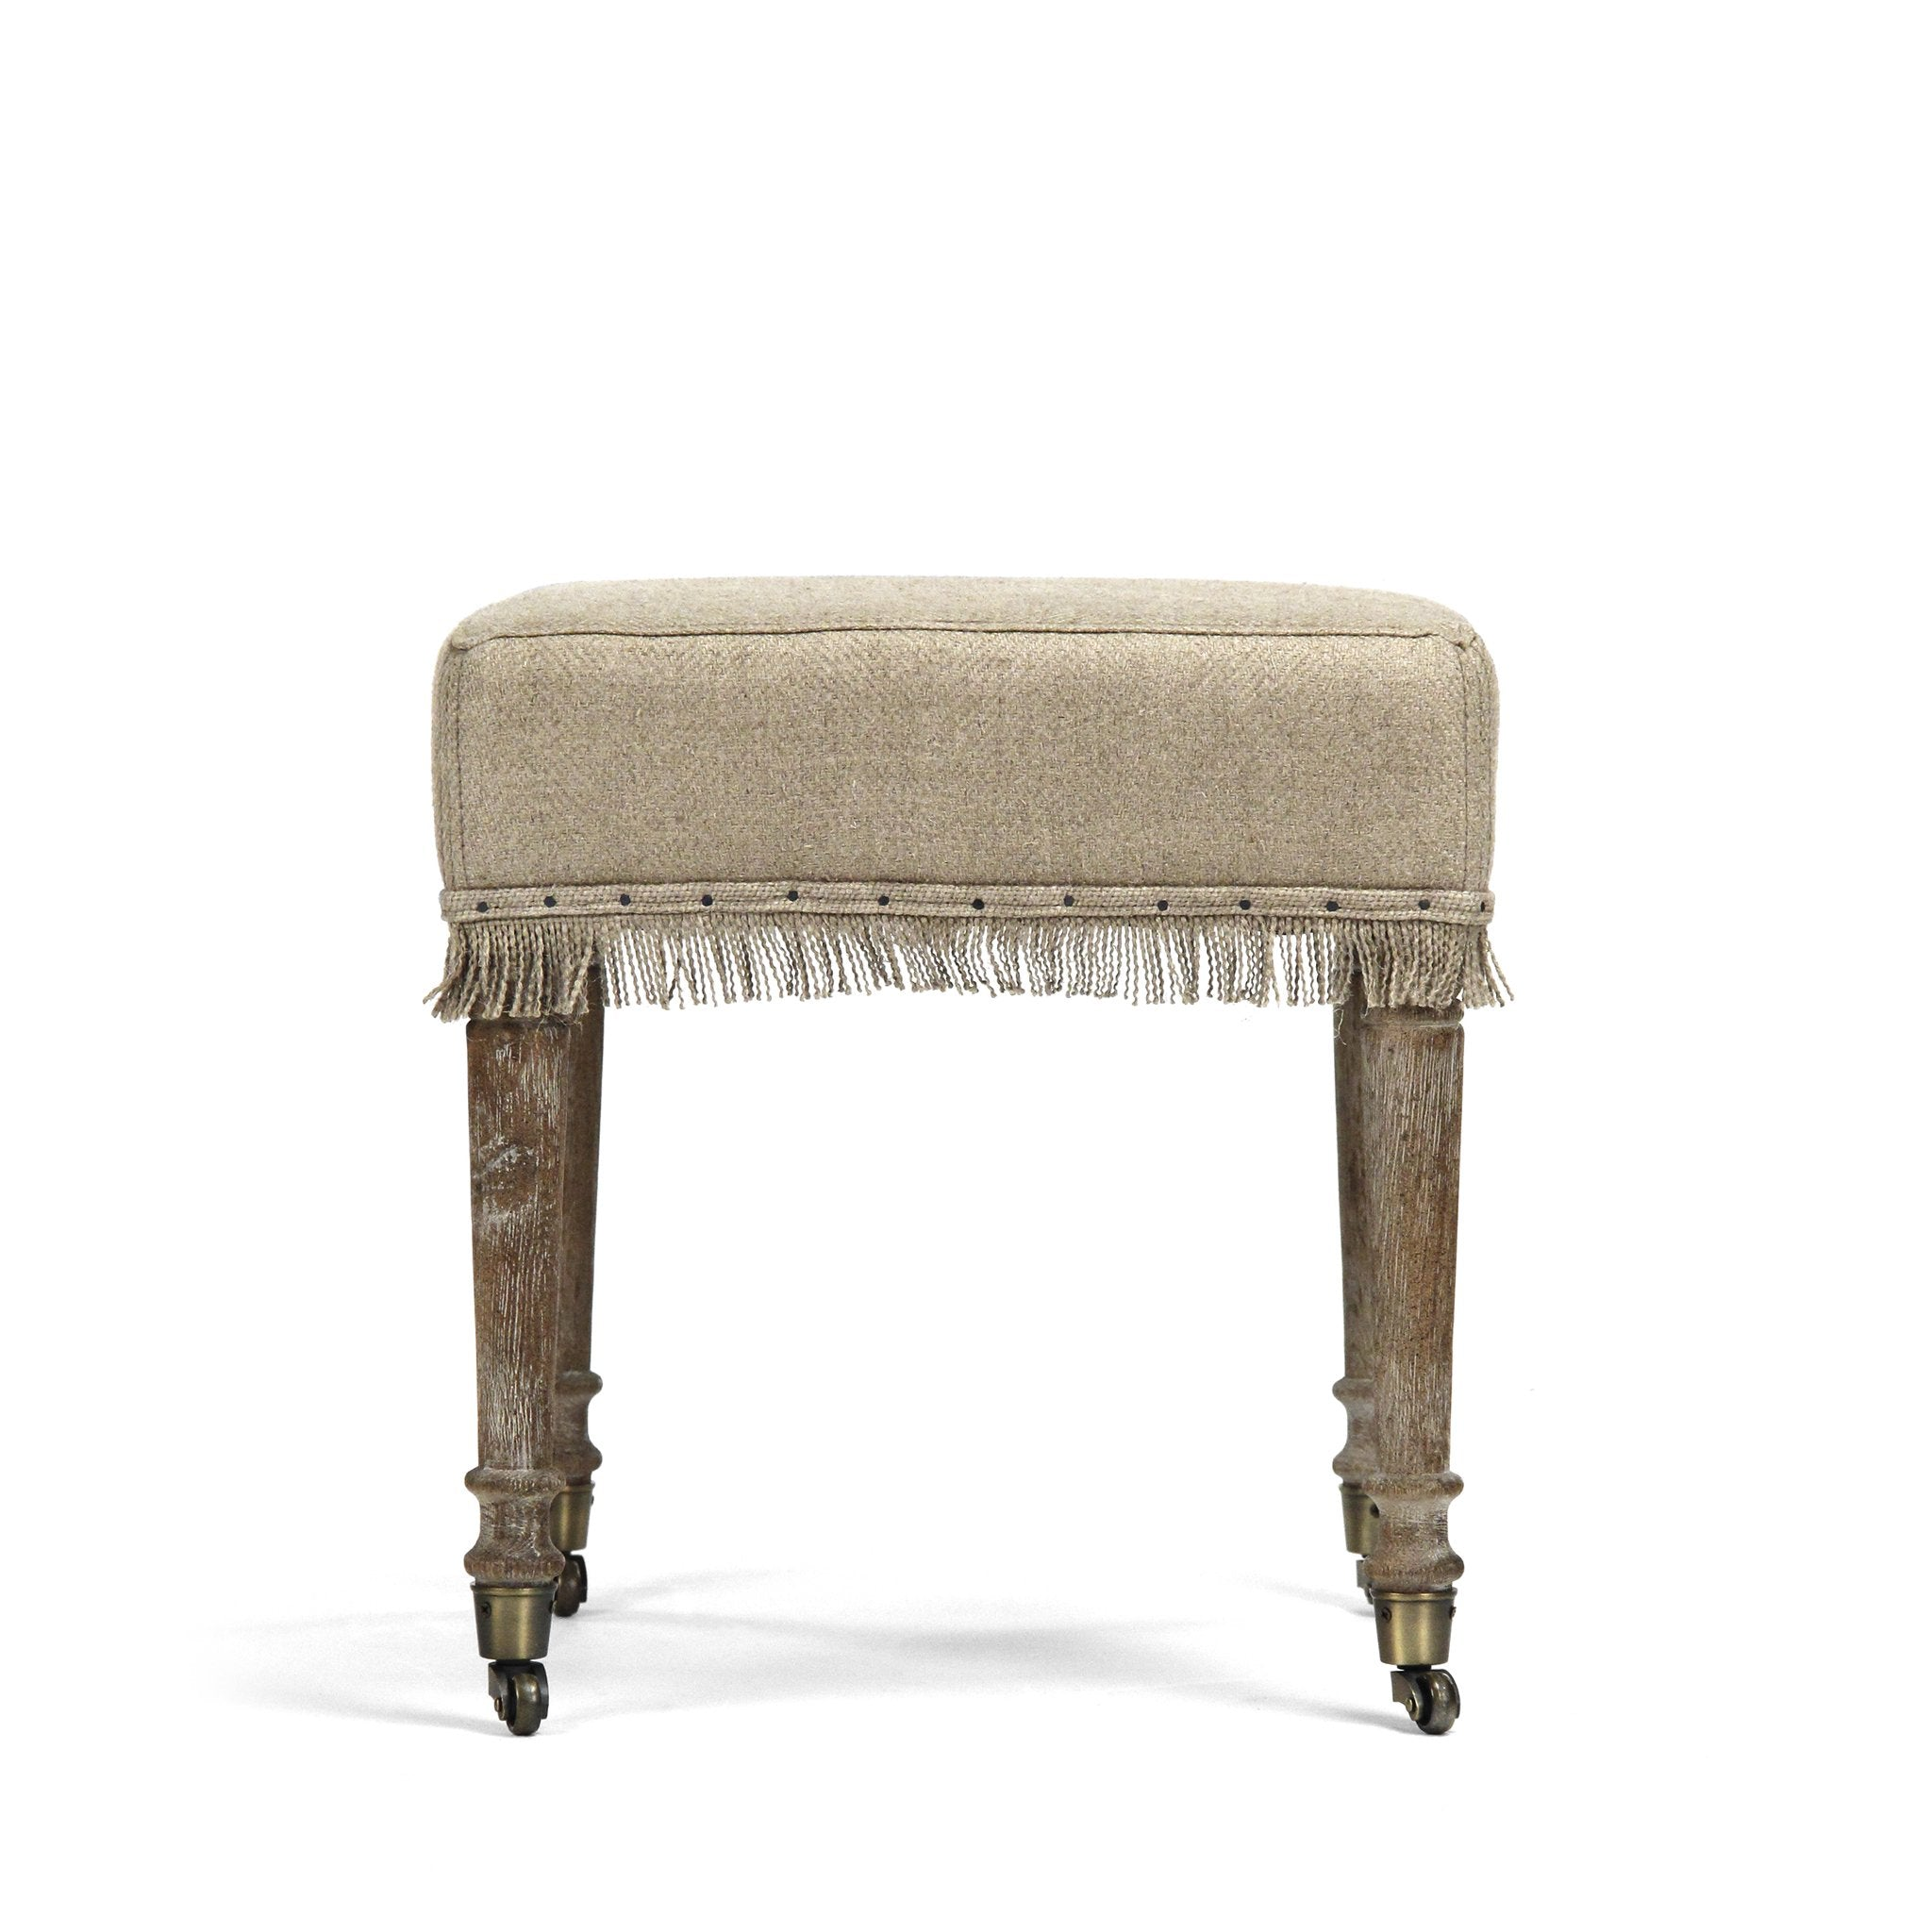 Cottage Chic Stool